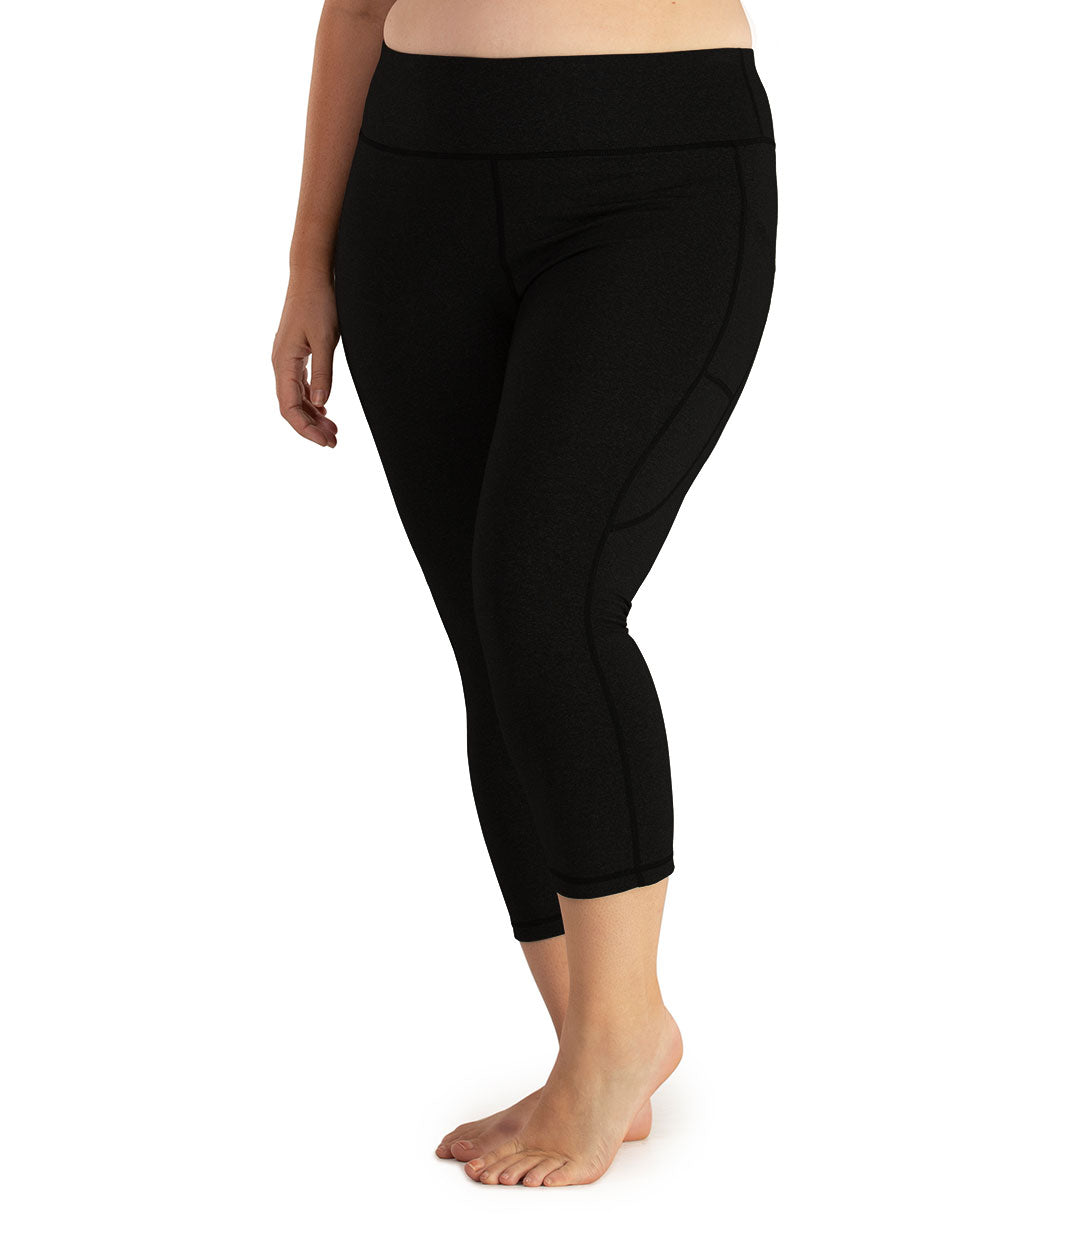 JunoStretch Side Pocket Capris Basic Colors-Bottoms Capris-Odki Sport-XL-Black-JunoActive